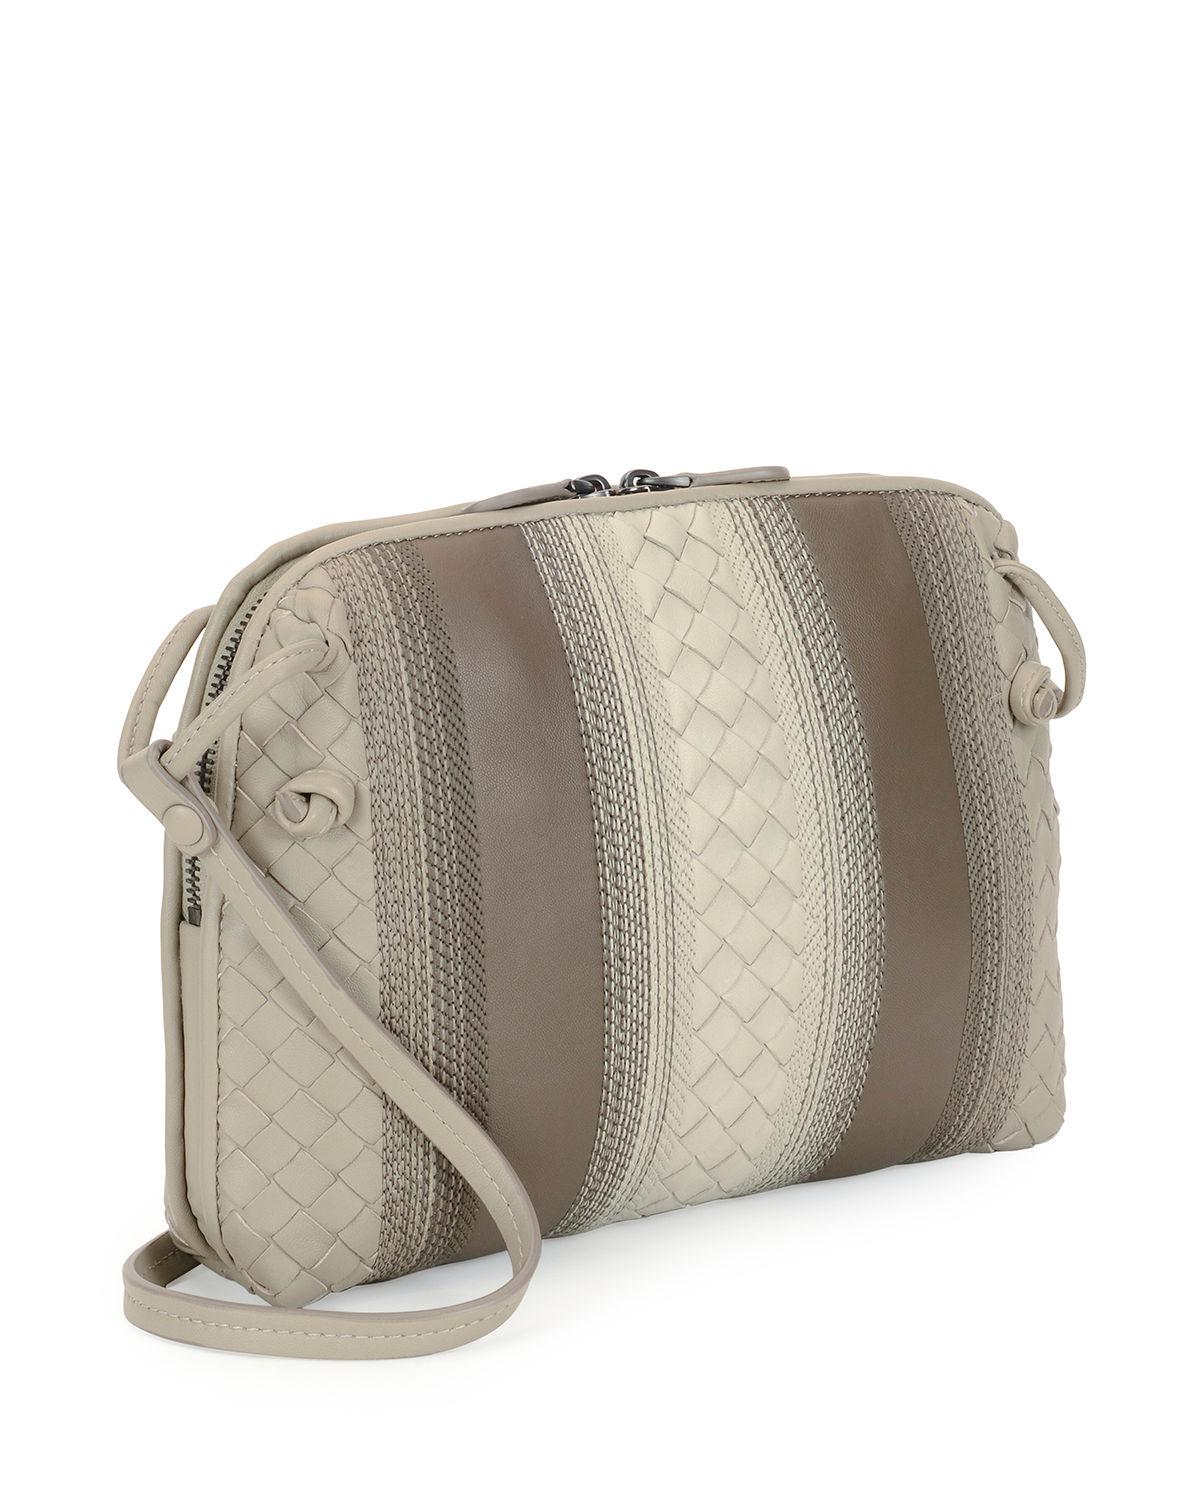 43456012d21a Lyst - Bottega Veneta Striped Leather Pillow Bag